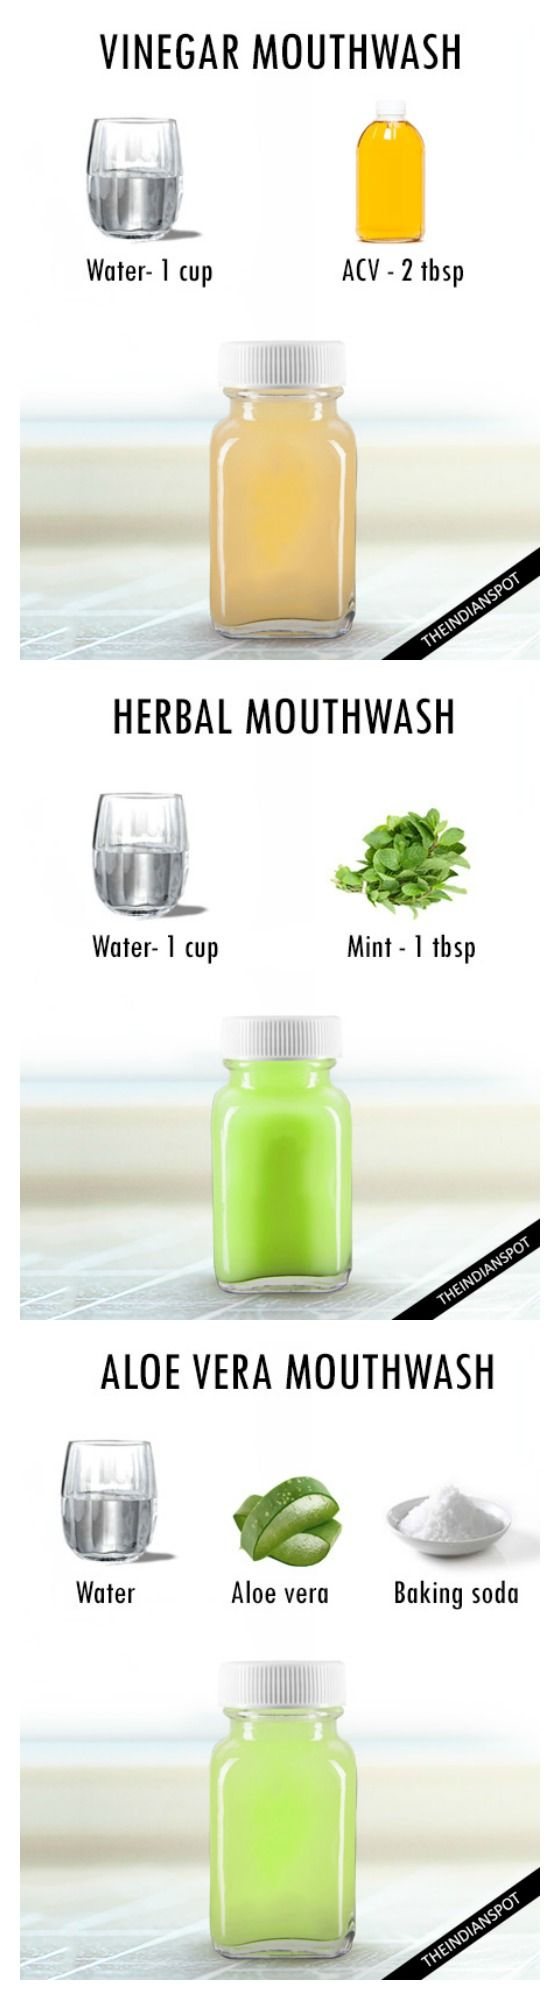 TOP 5 HOMEMADE MOUTHWASH RECIPES